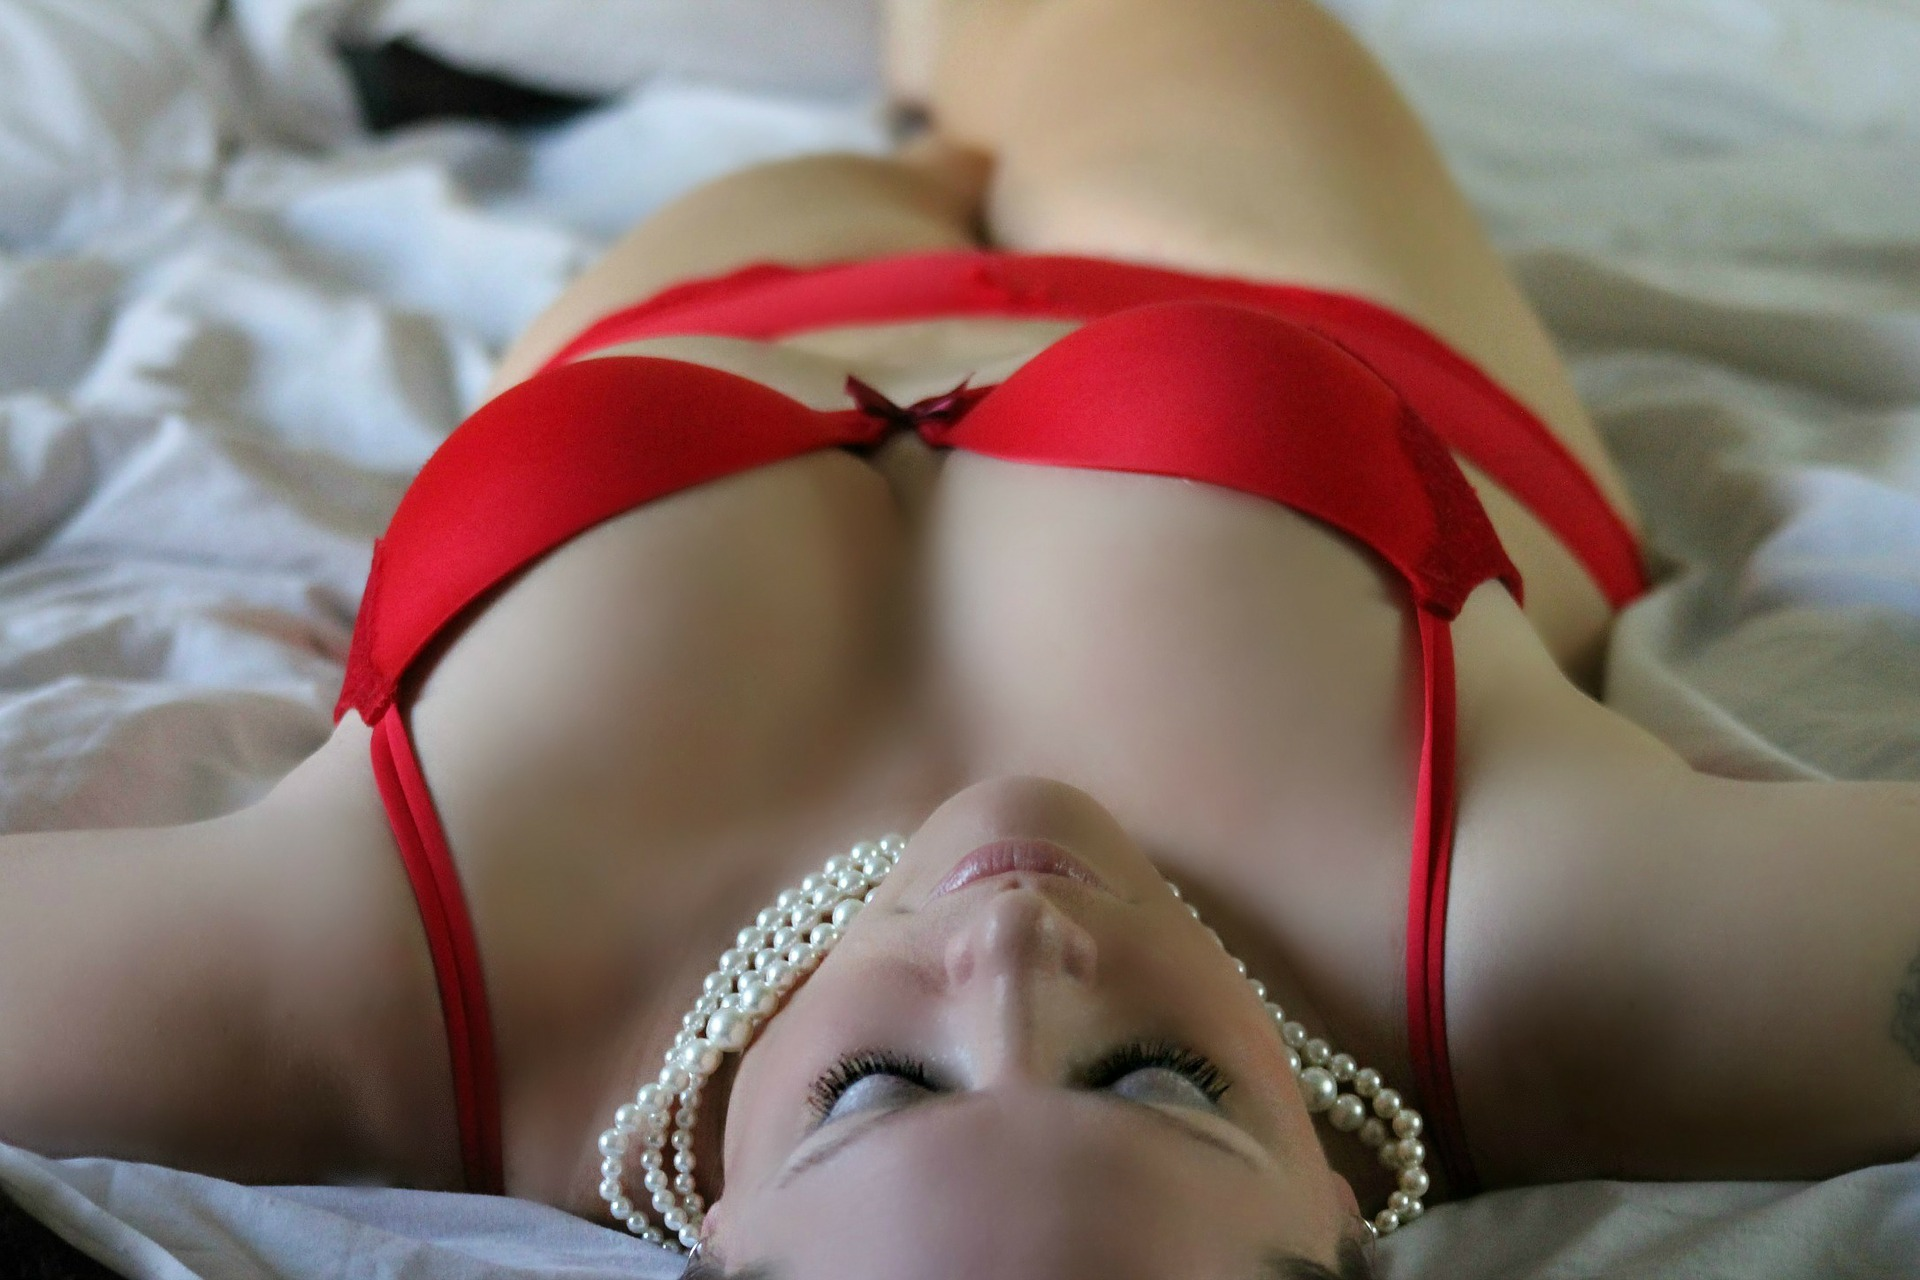 A woman reclining on a bed wearing red lingerie and pearls. For a sponsored post for Baby Jane LIngerie.